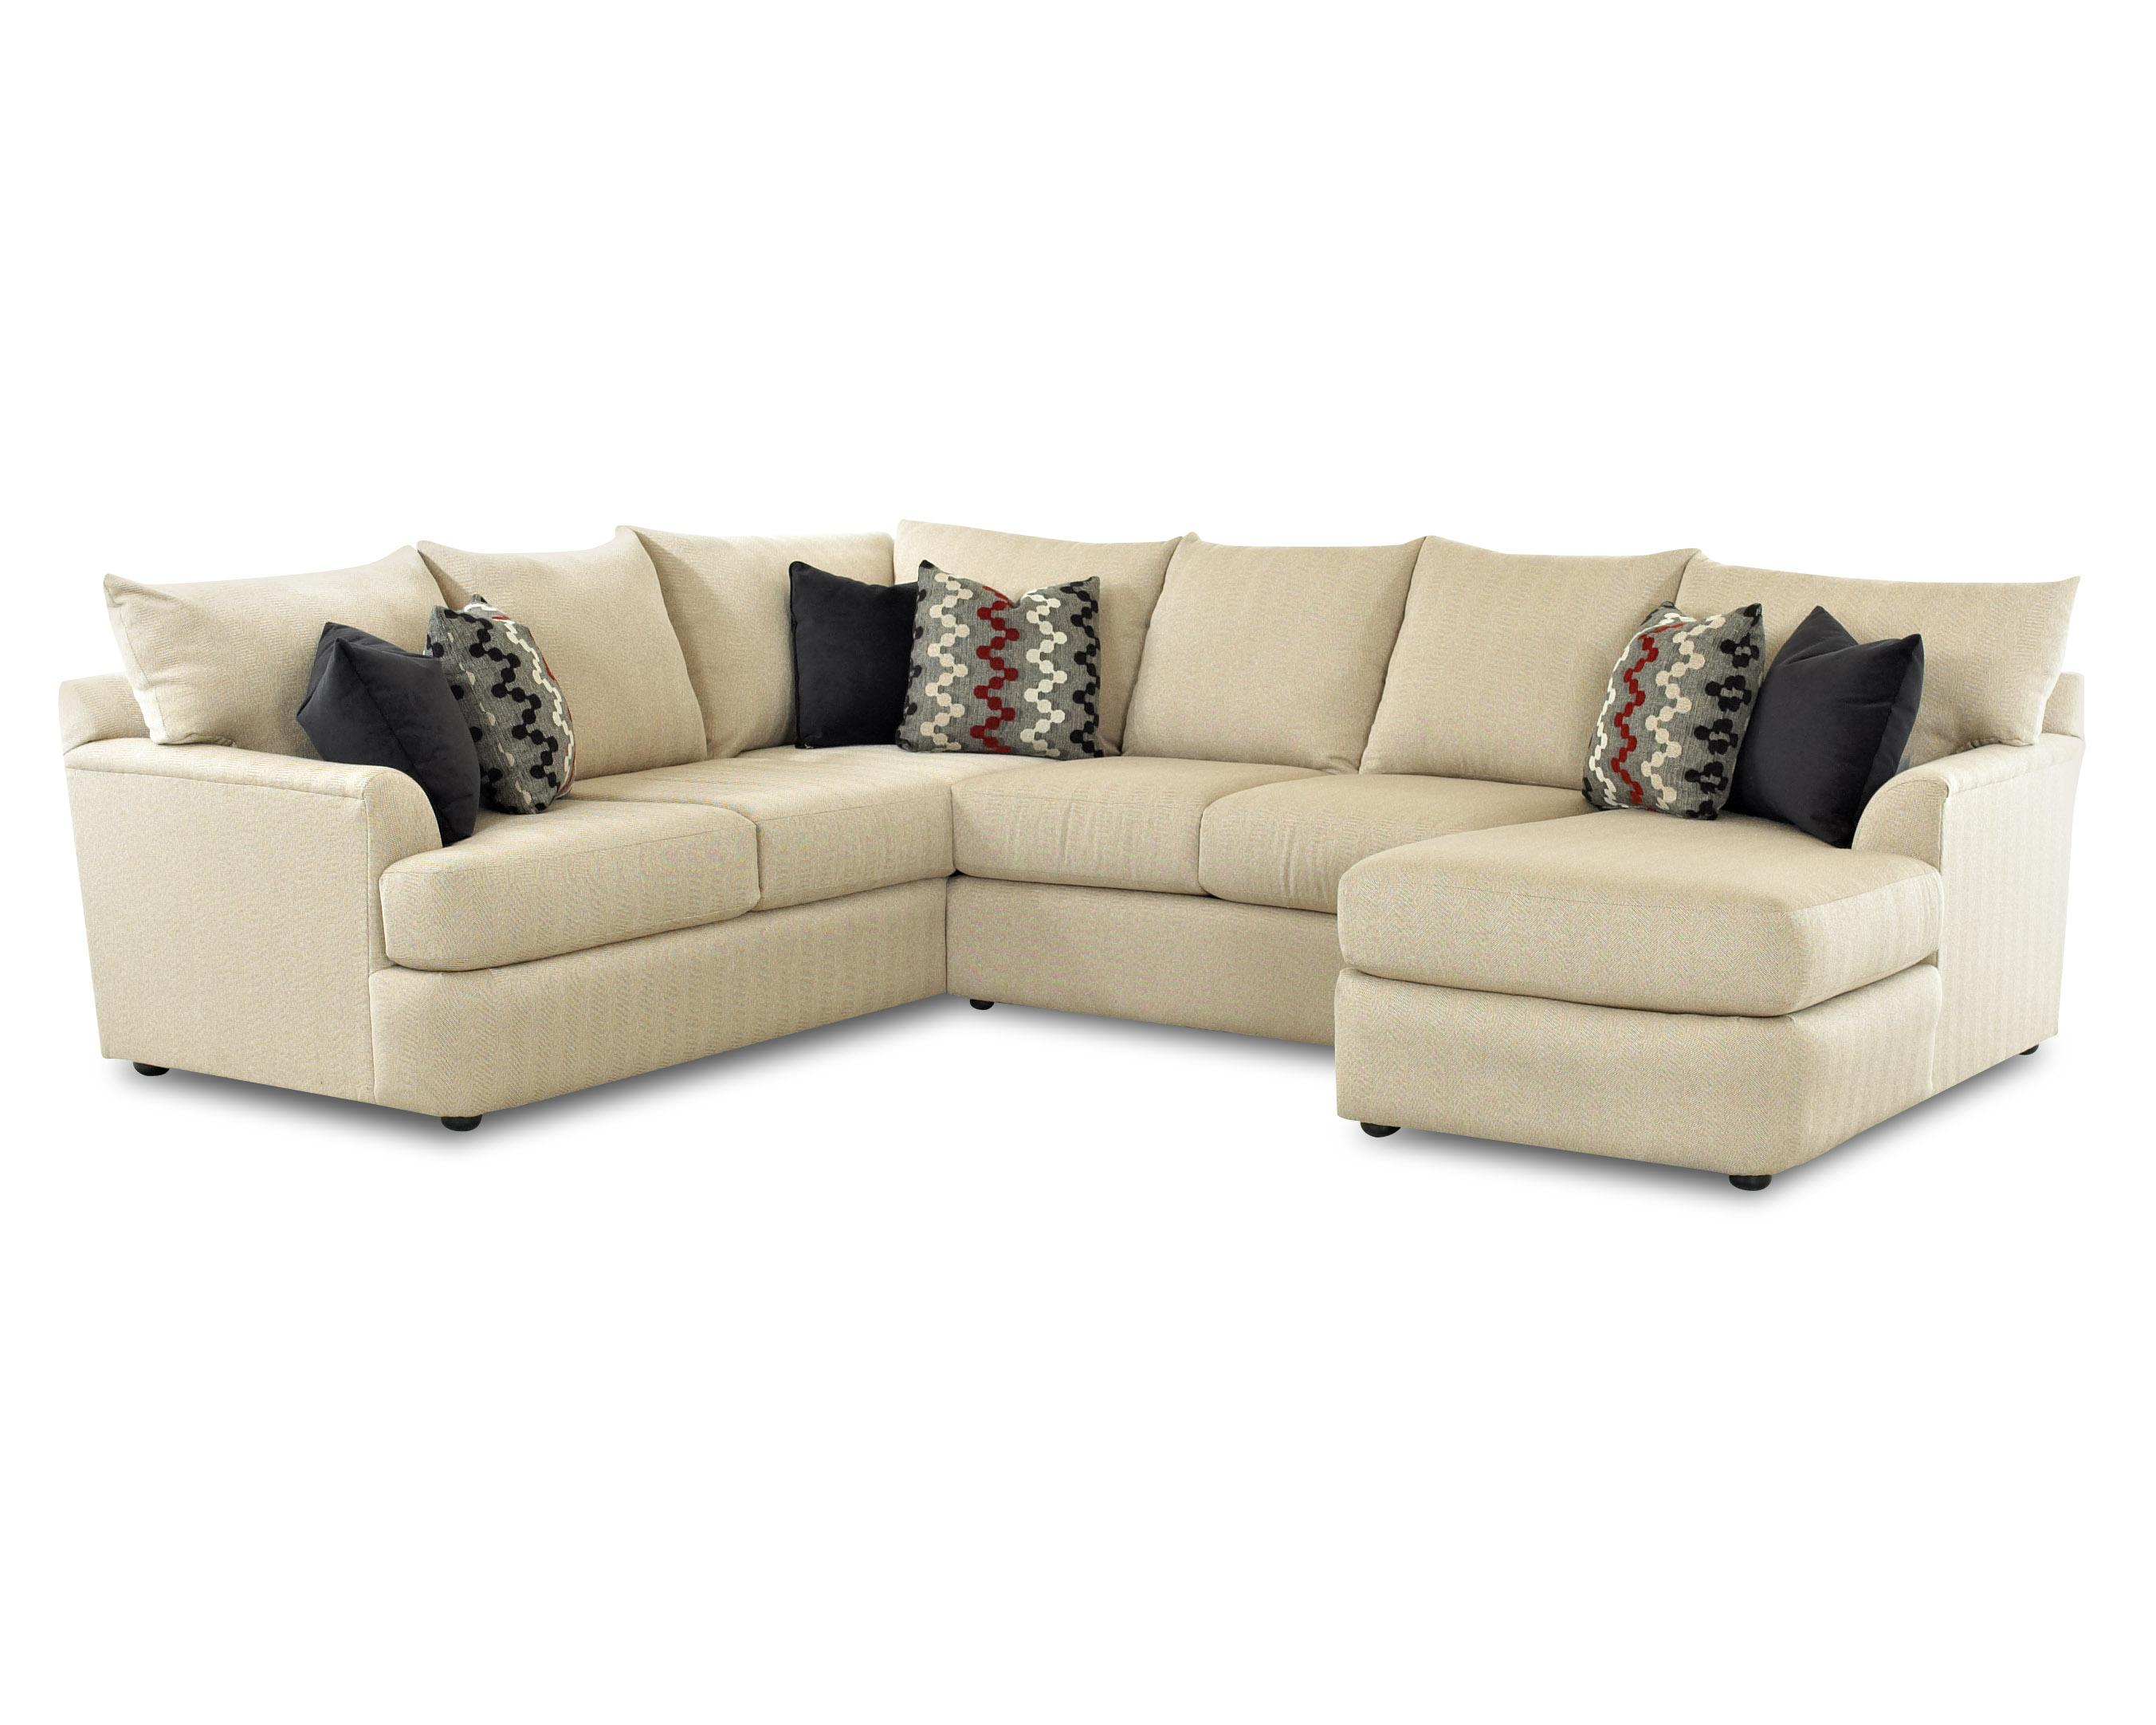 Findley Sectional Sofa by Klaussner at Johnny Janosik